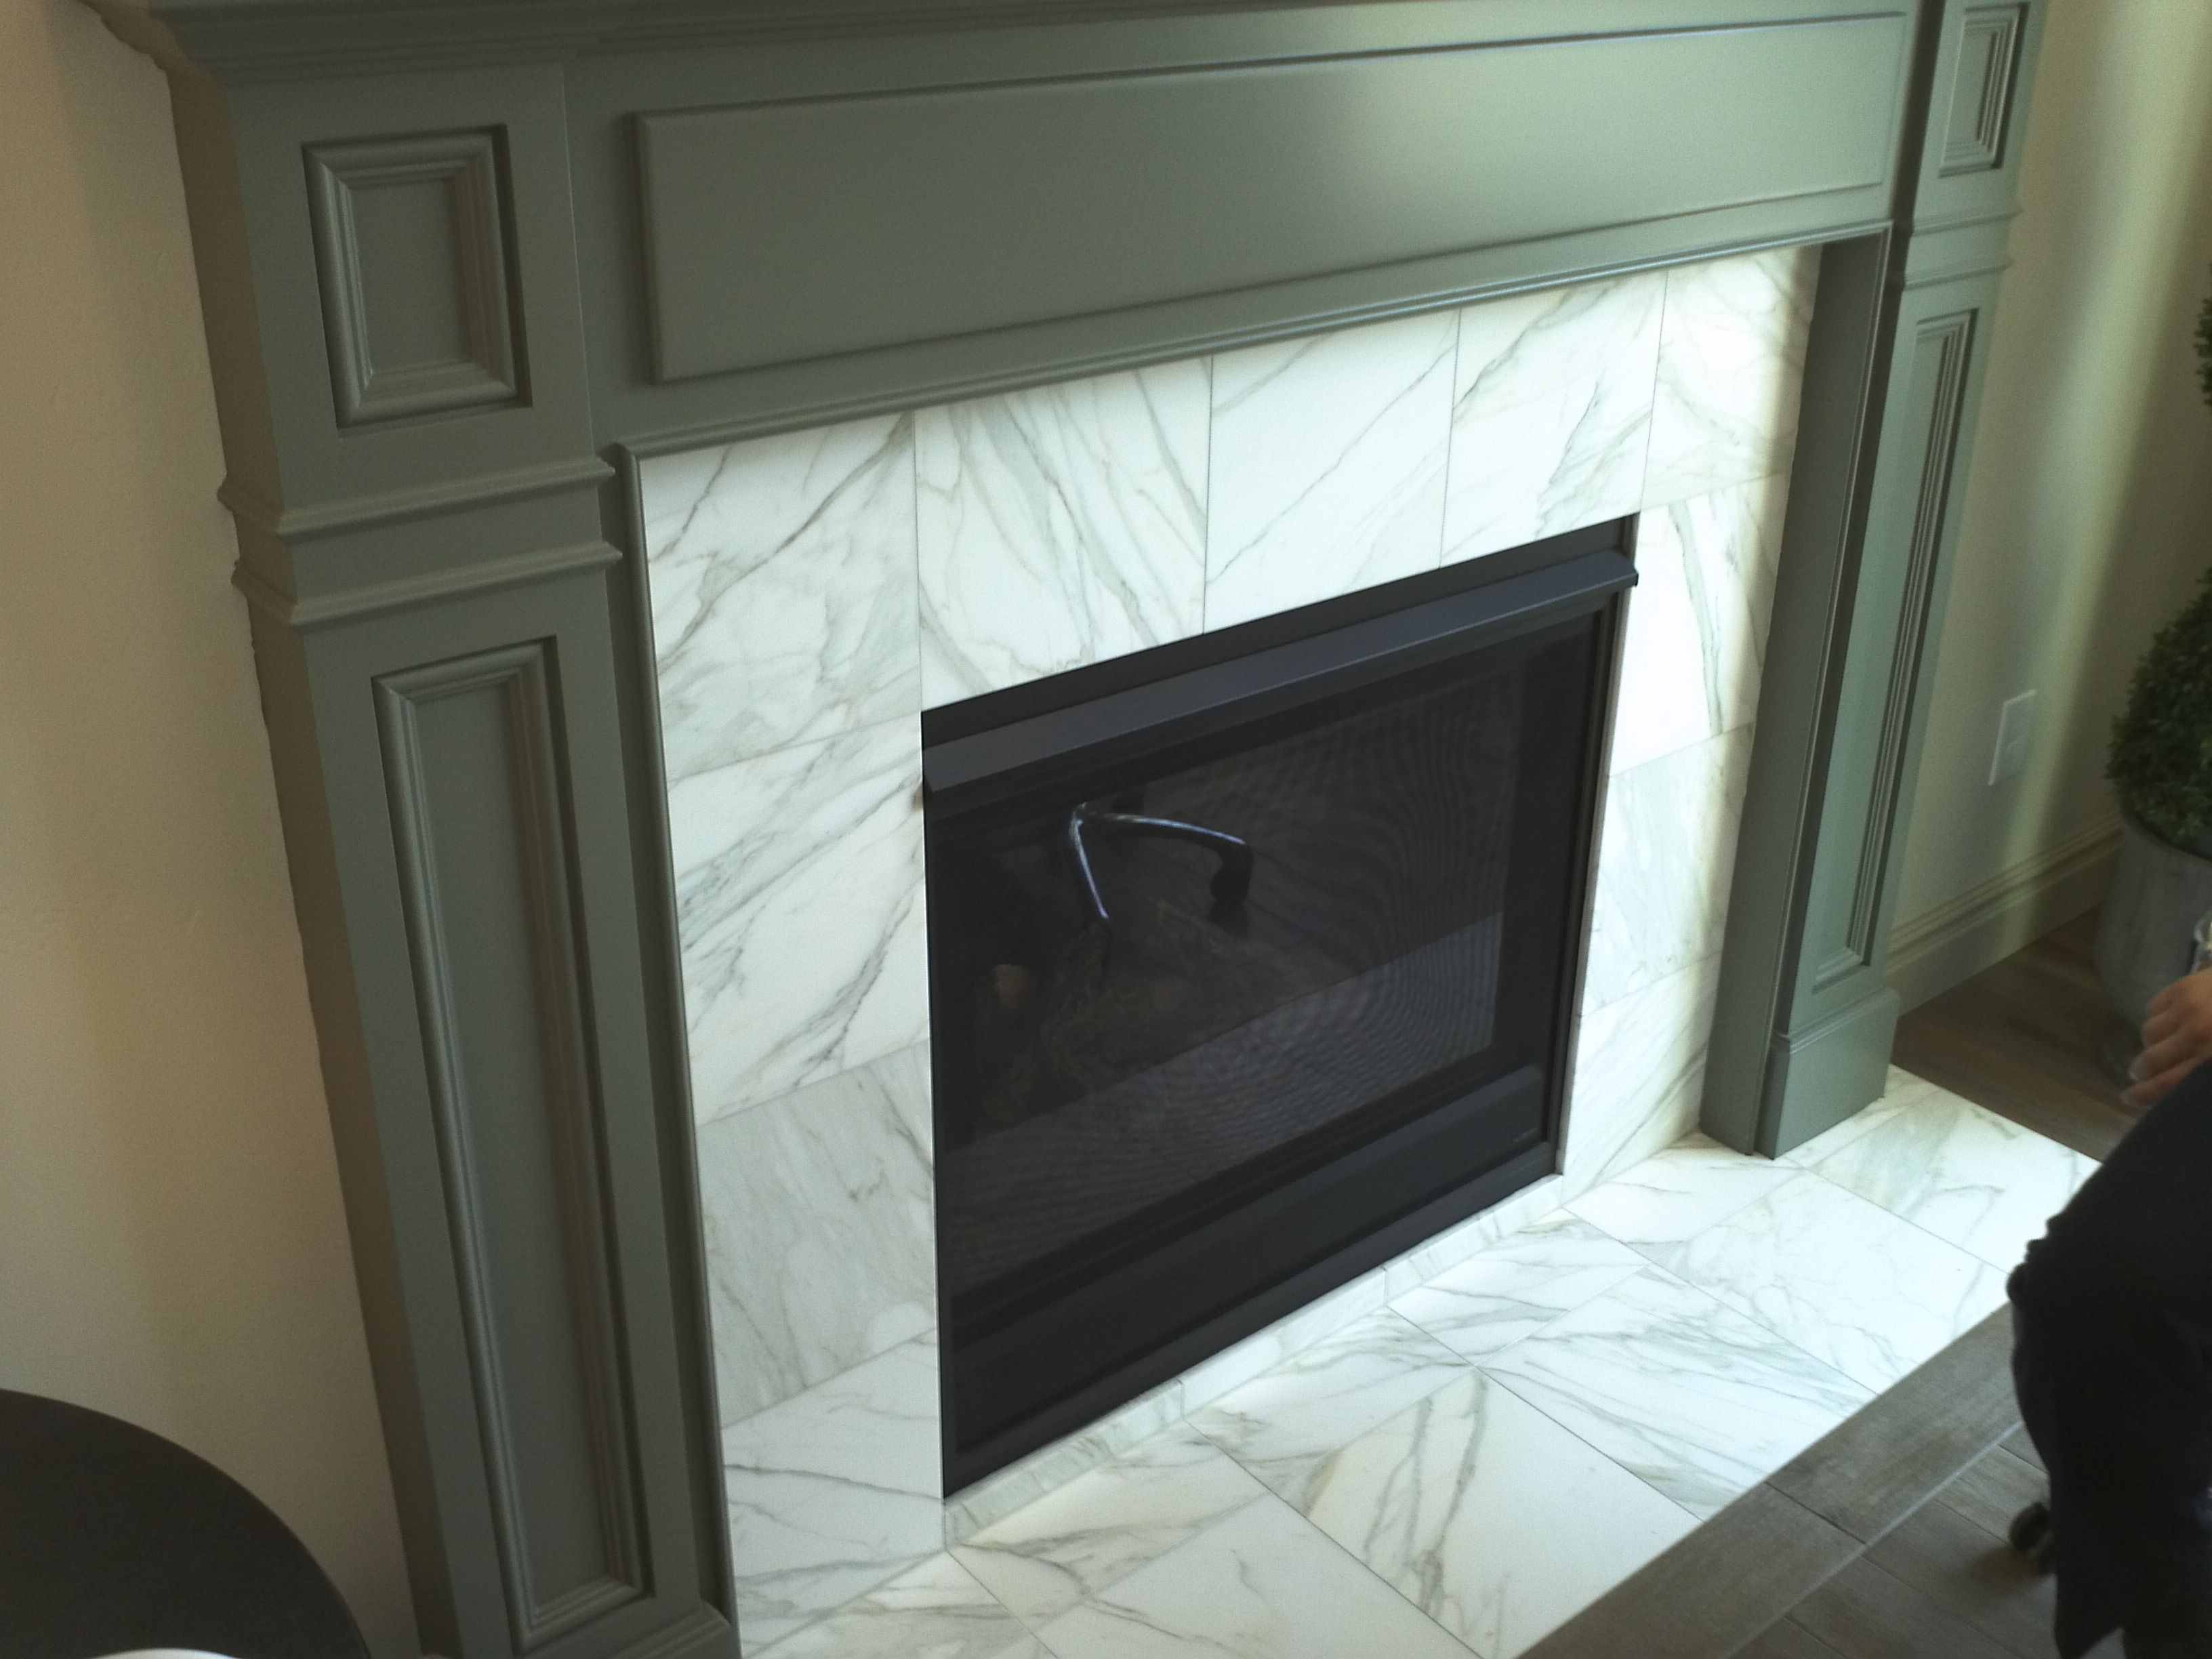 Carrara White Tile Fireplace Surround found at Contempo Tile